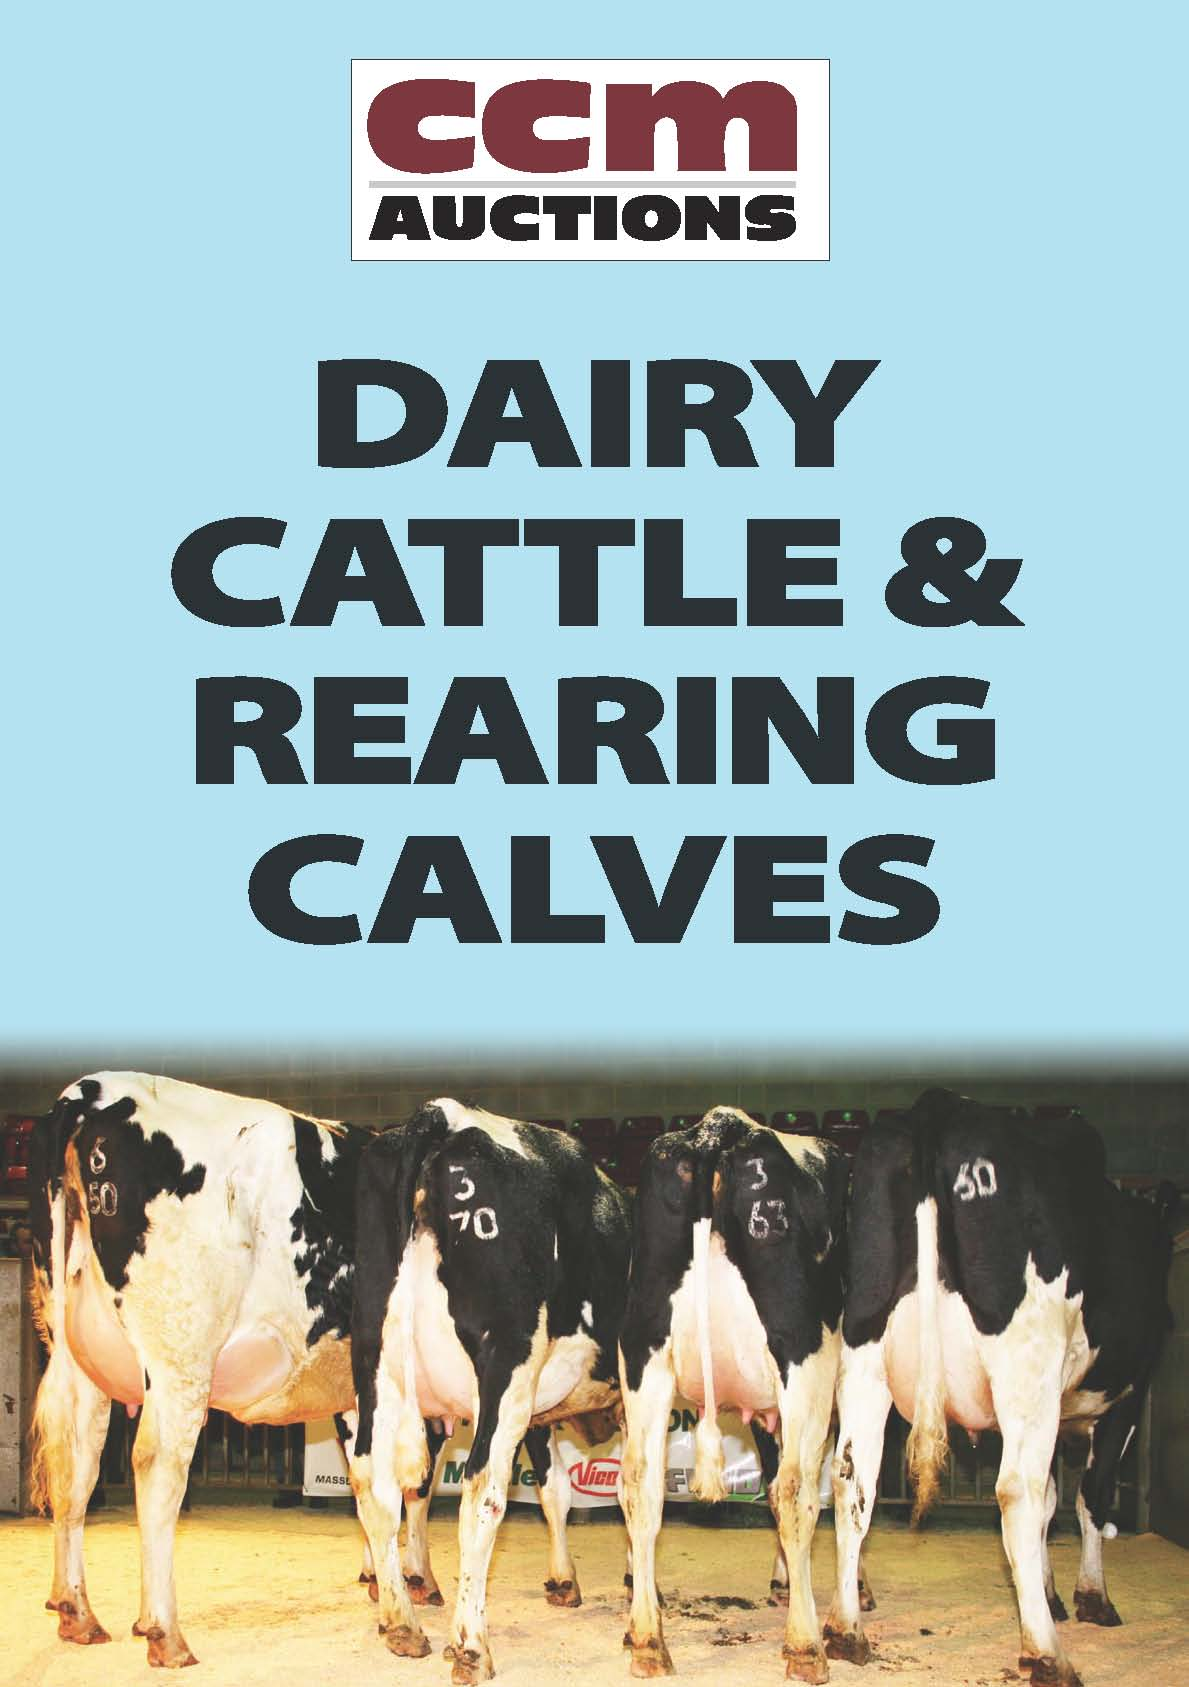 DAIRY & CALVES - MONDAY 11TH APRIL 2016